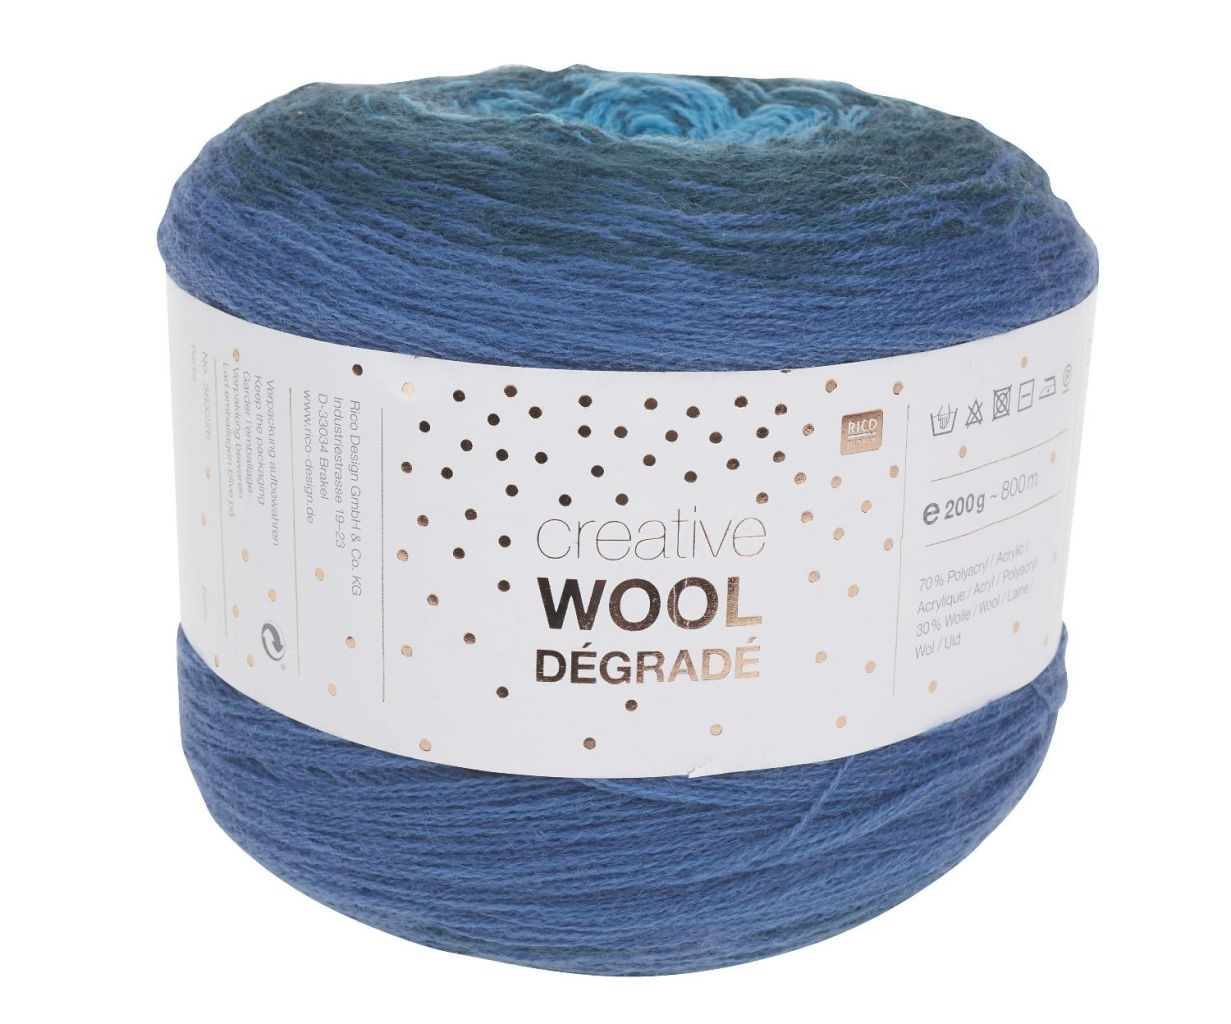 13 Creative wool degrade rico.jpg